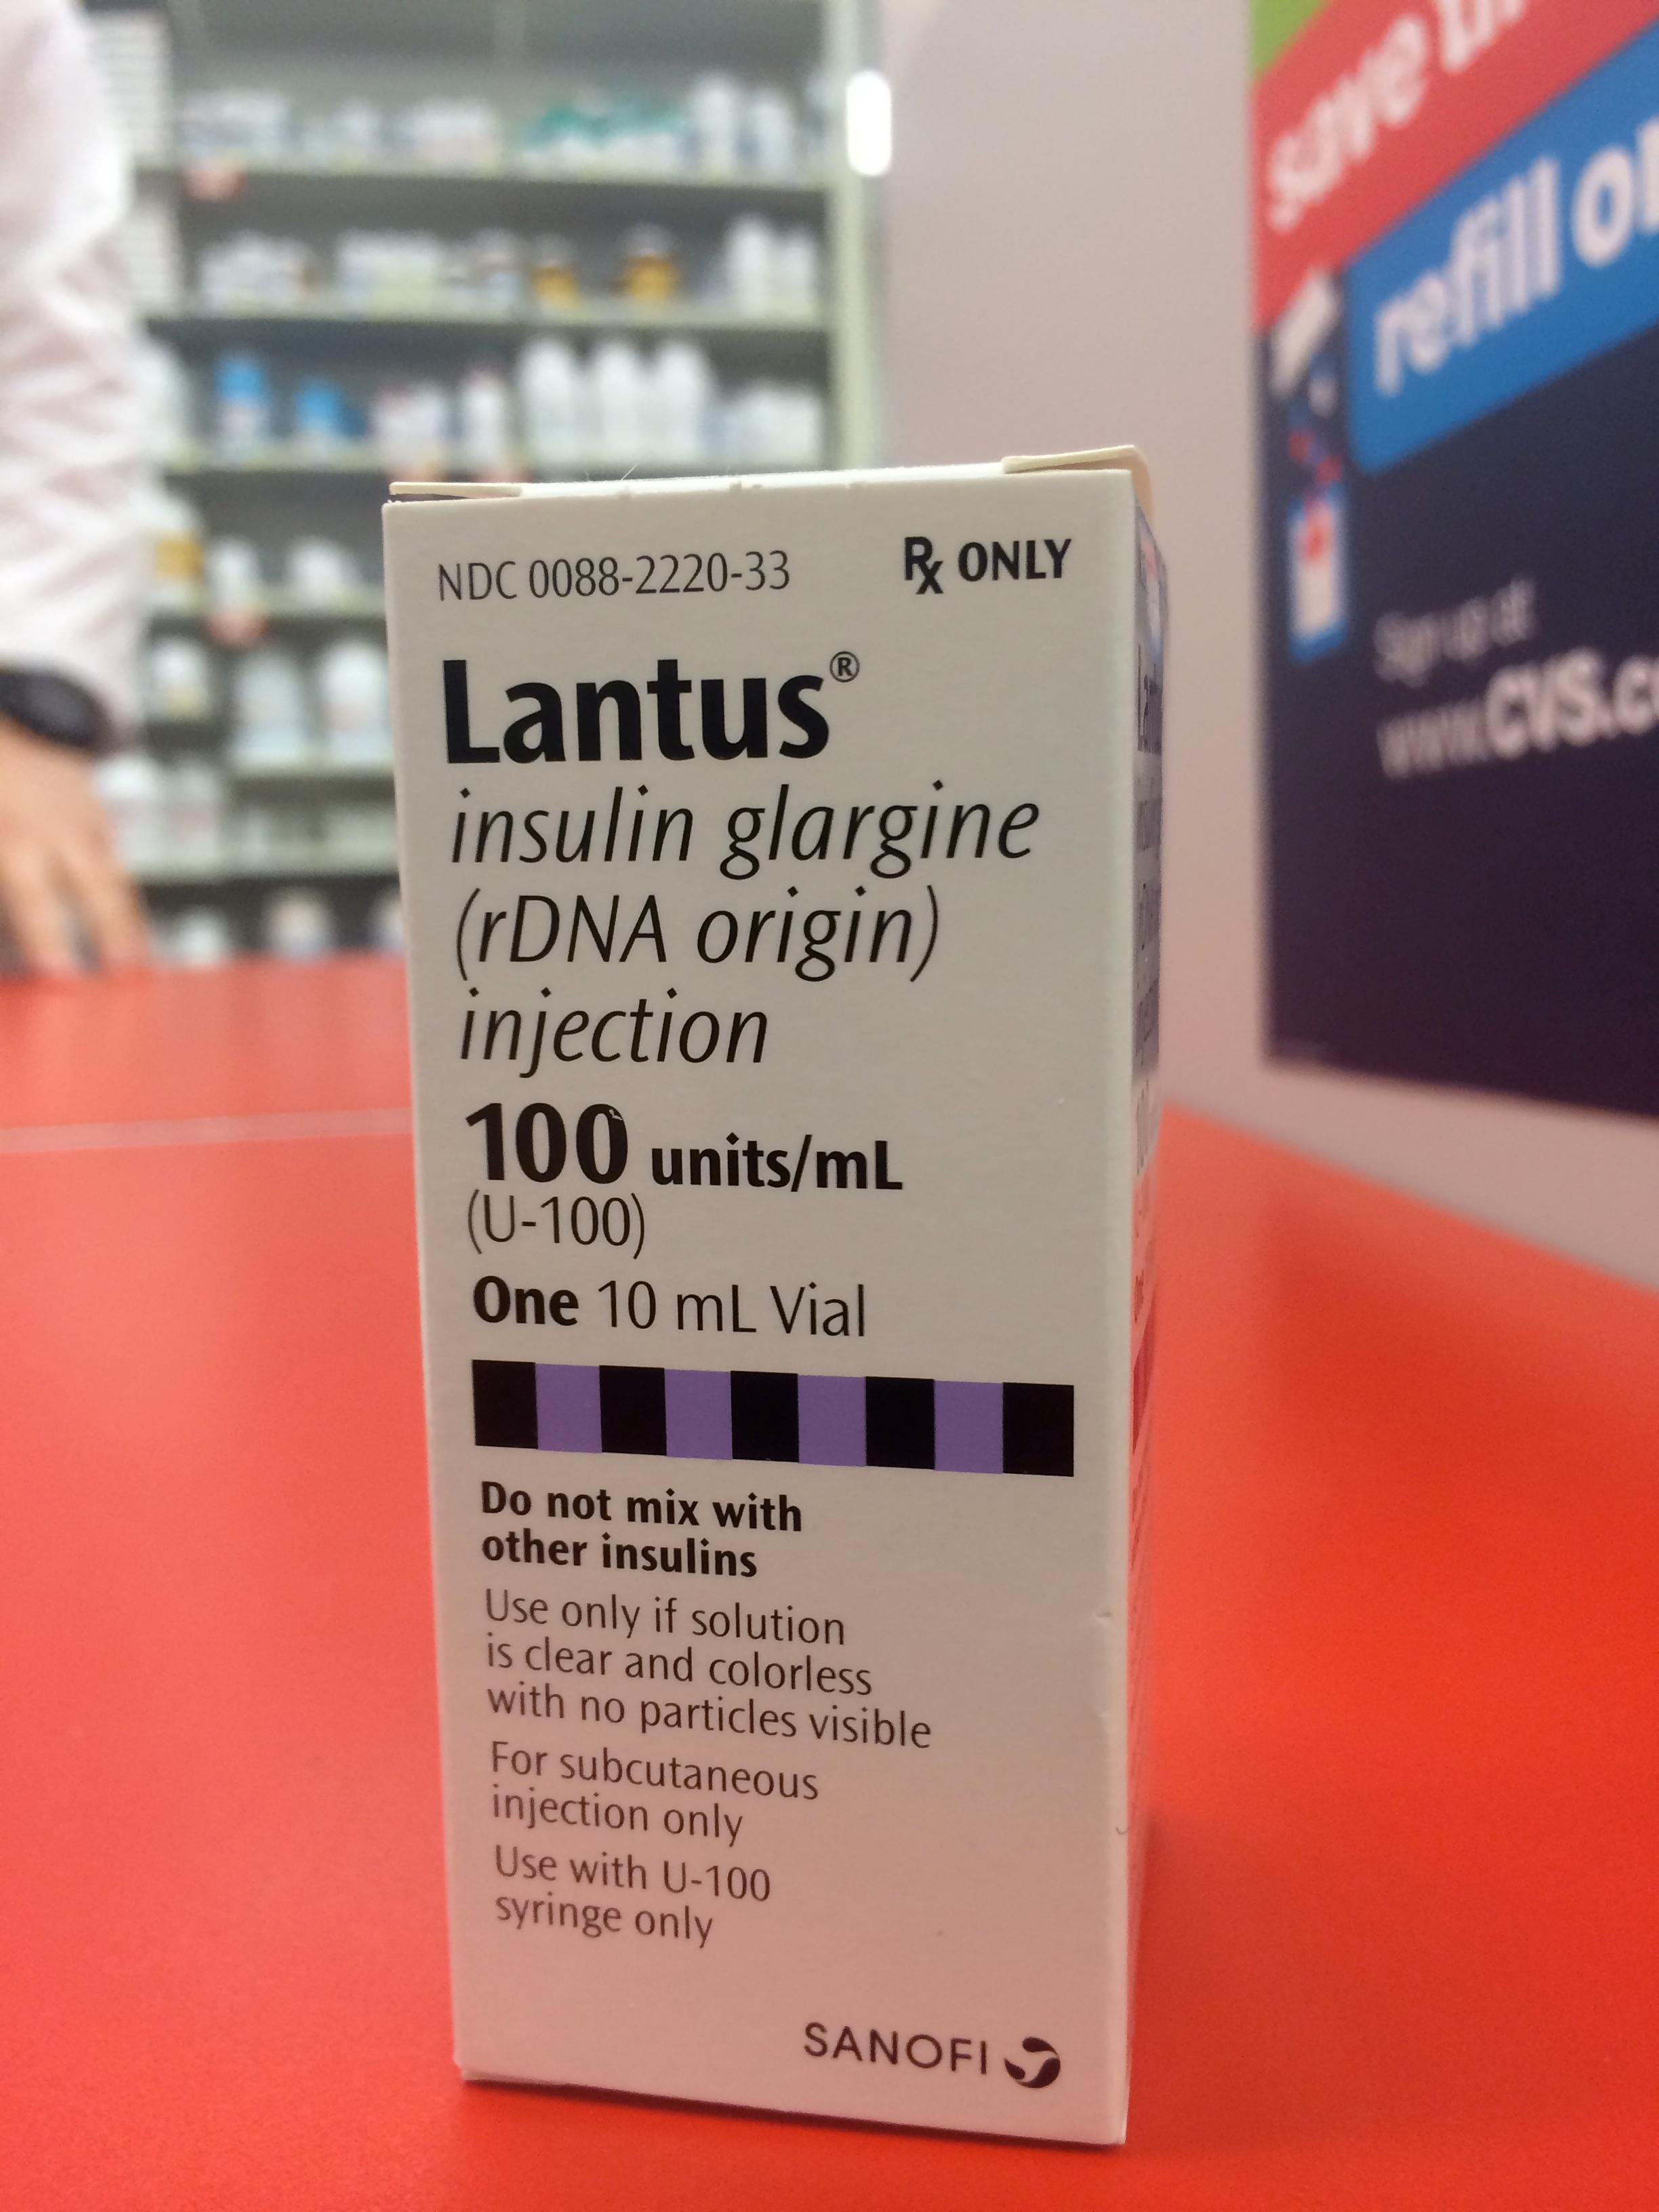 Lantus Prices Squeeze Veterinarians And Owners Of Diabetic Cats